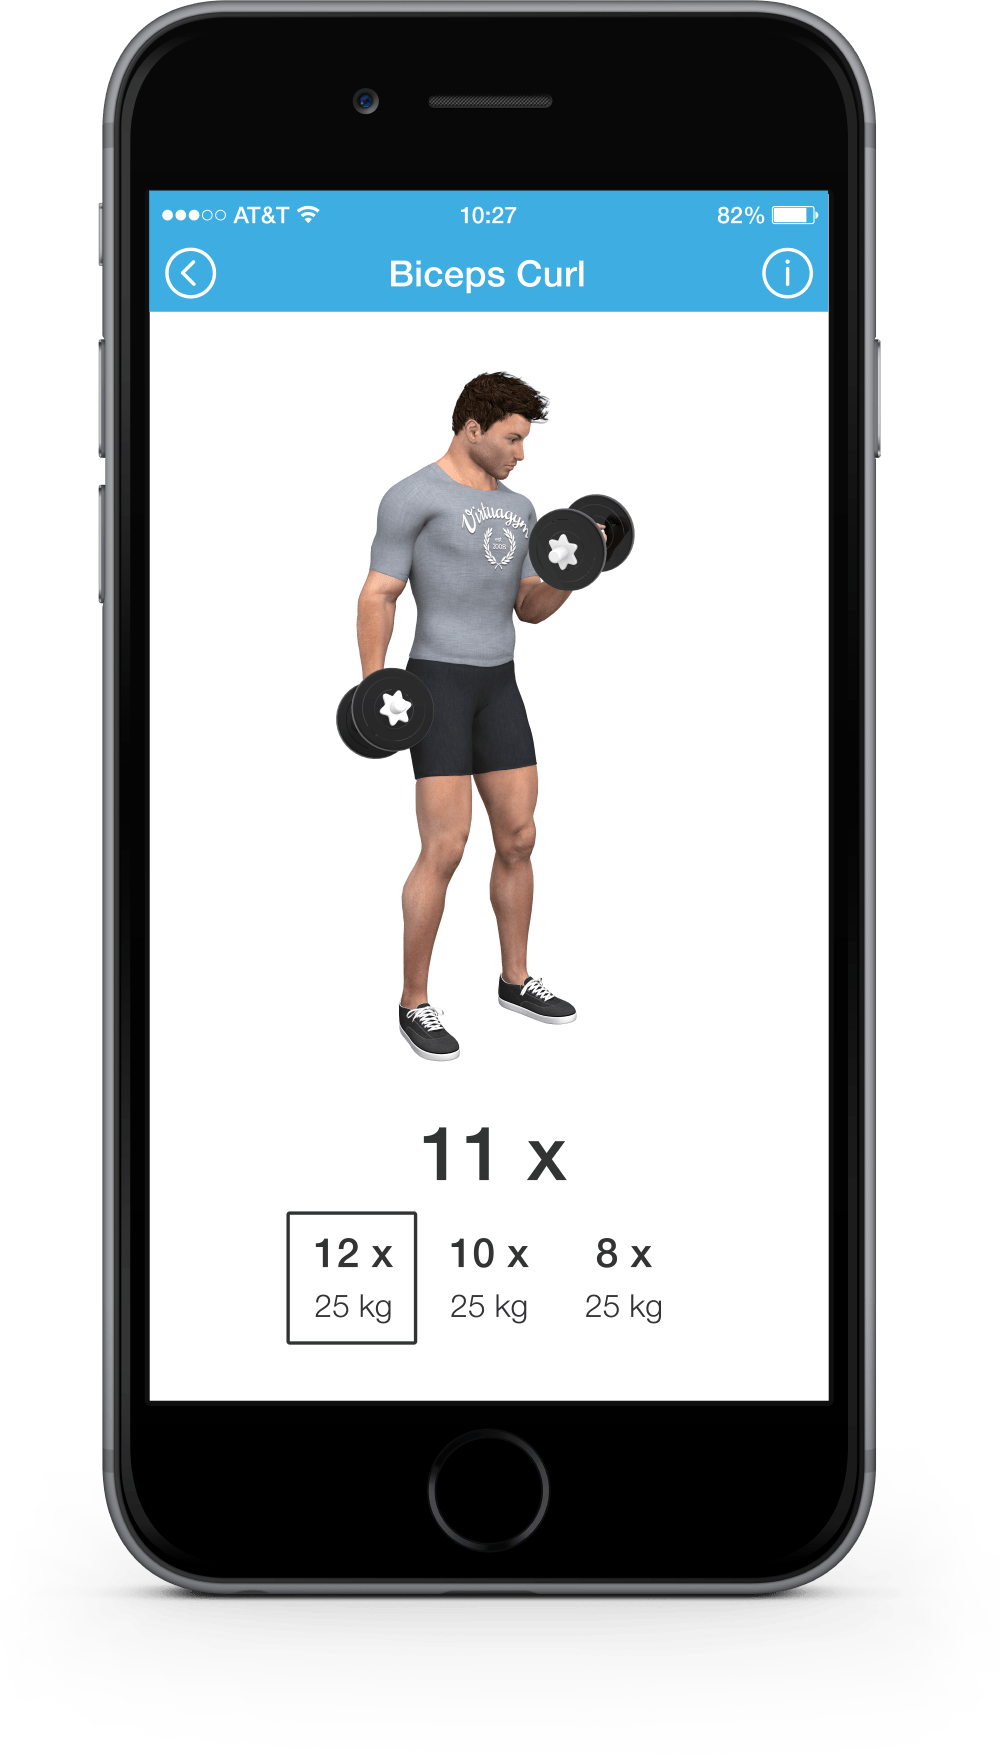 Iphone bicep curl